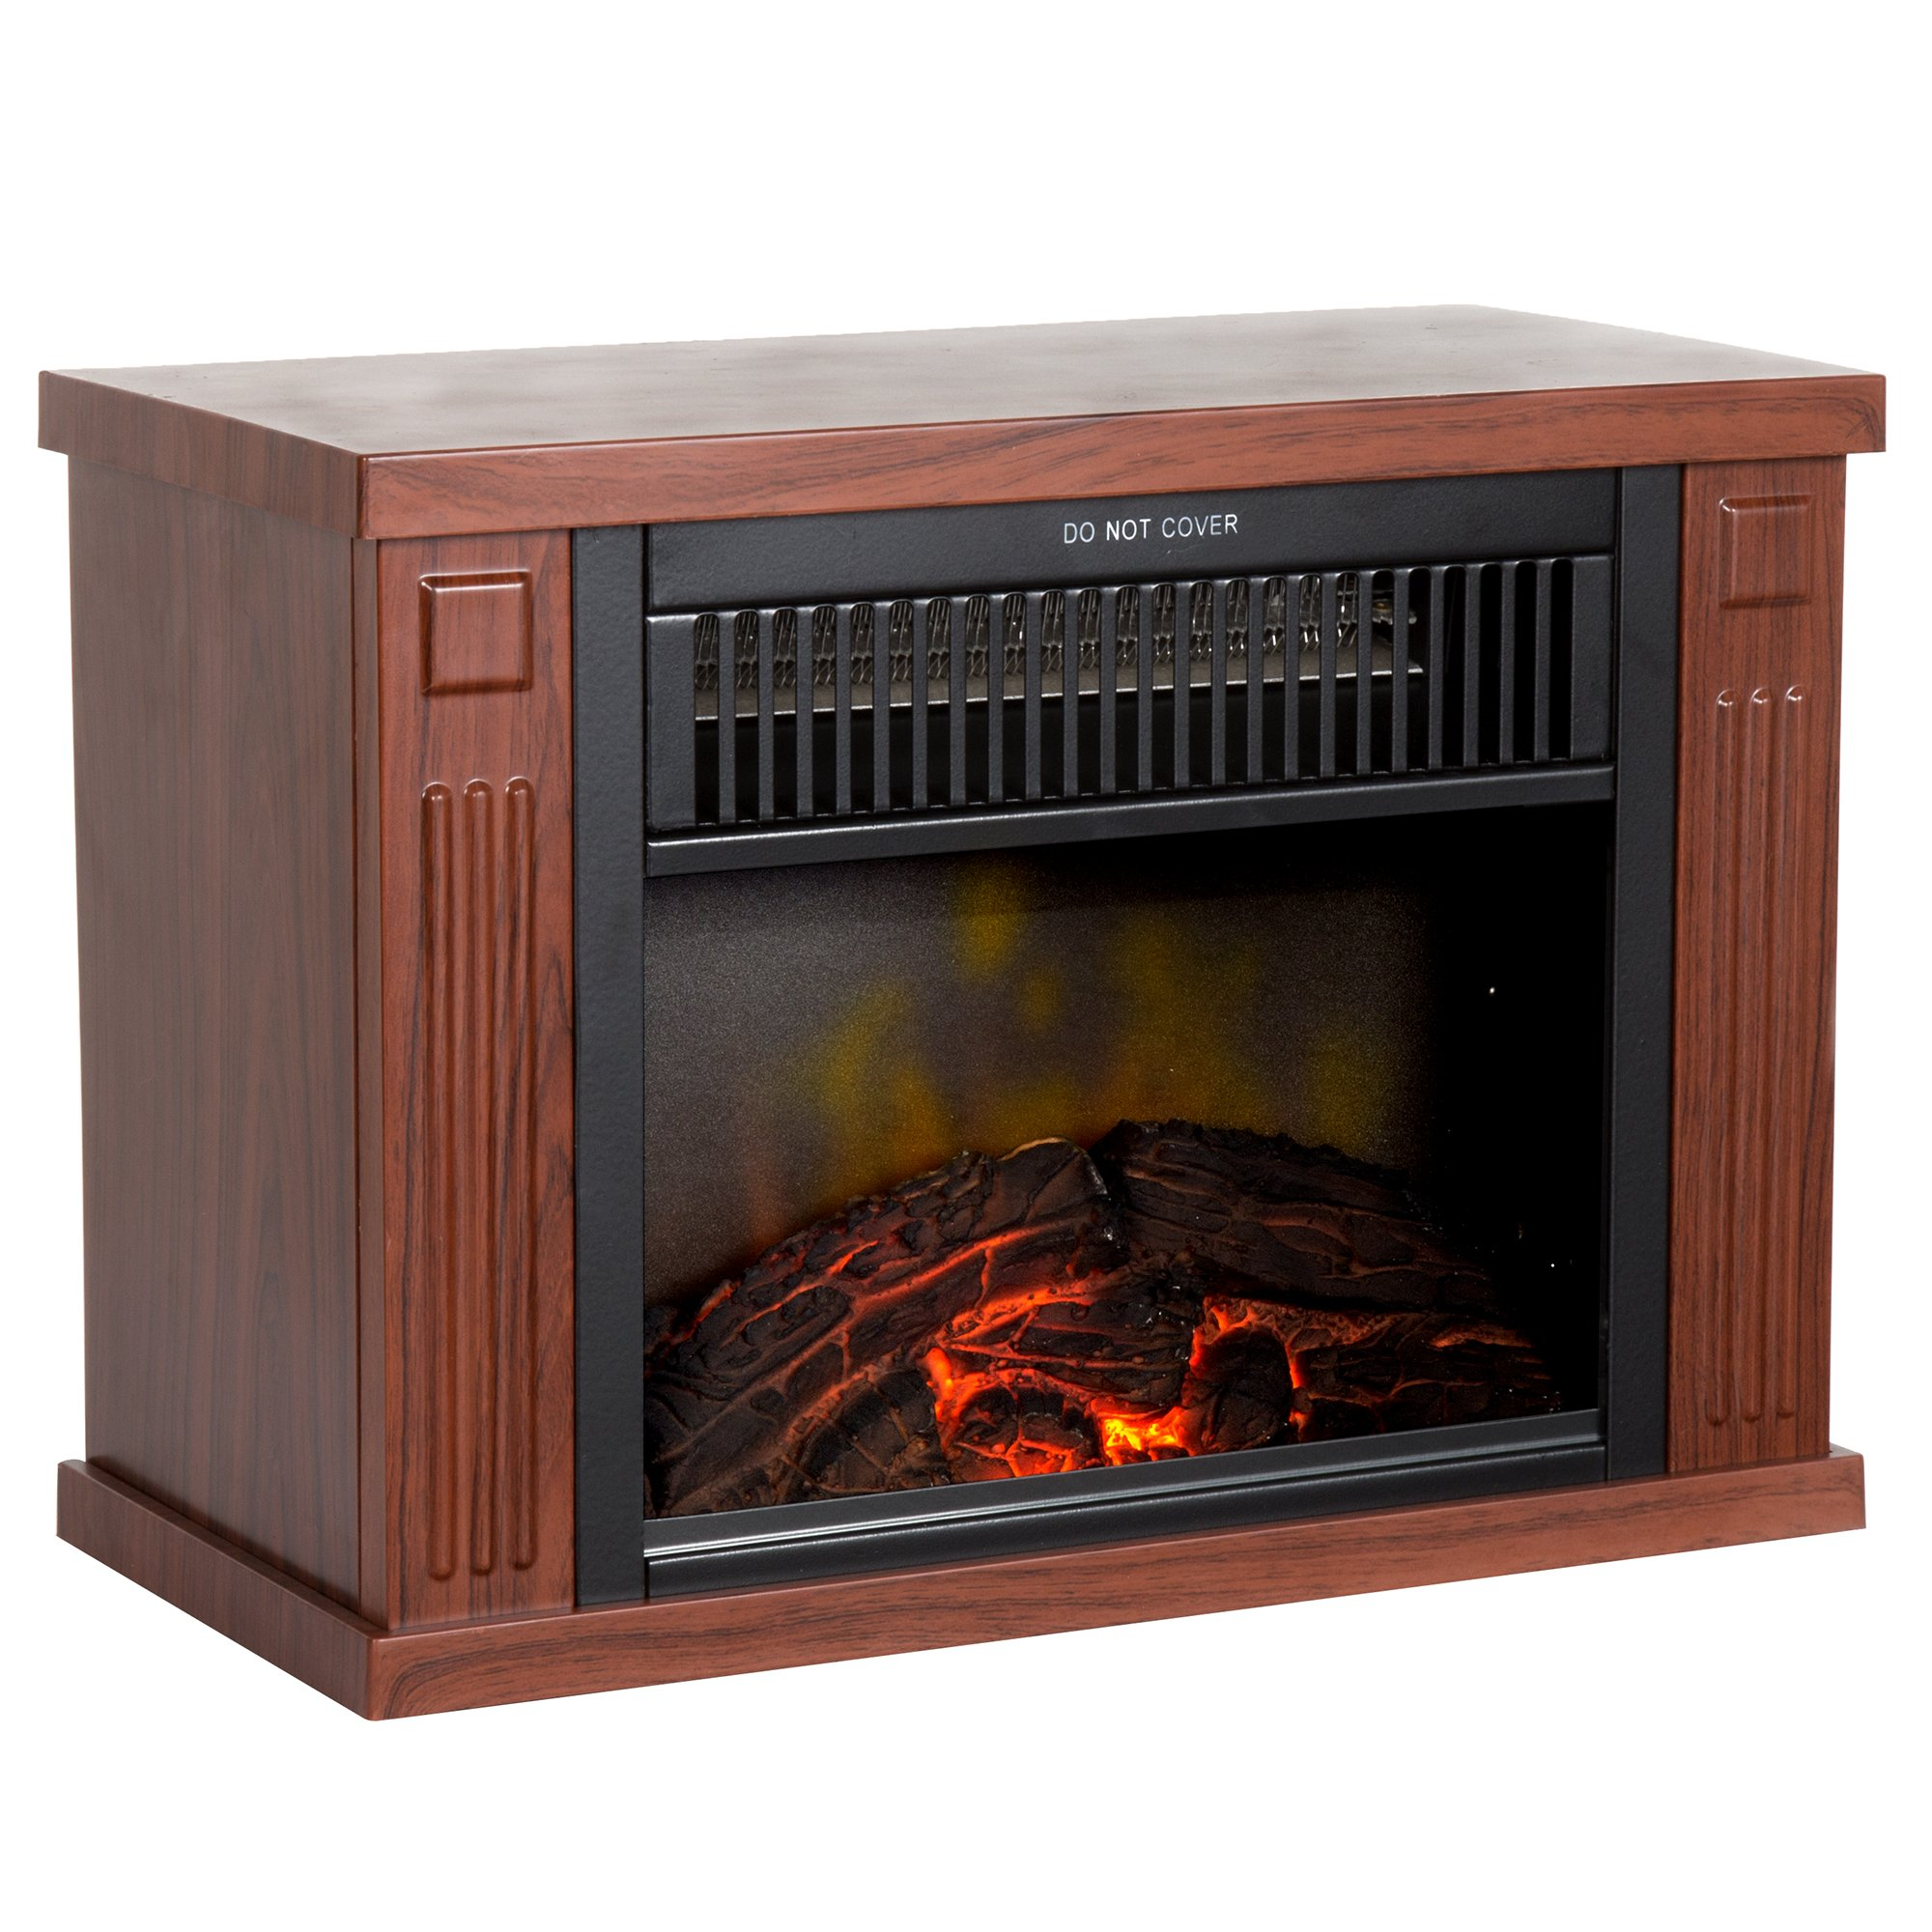 Northwest 80-EF480-W Portable Mini Electric Fireplace Heater, 13'', Wood